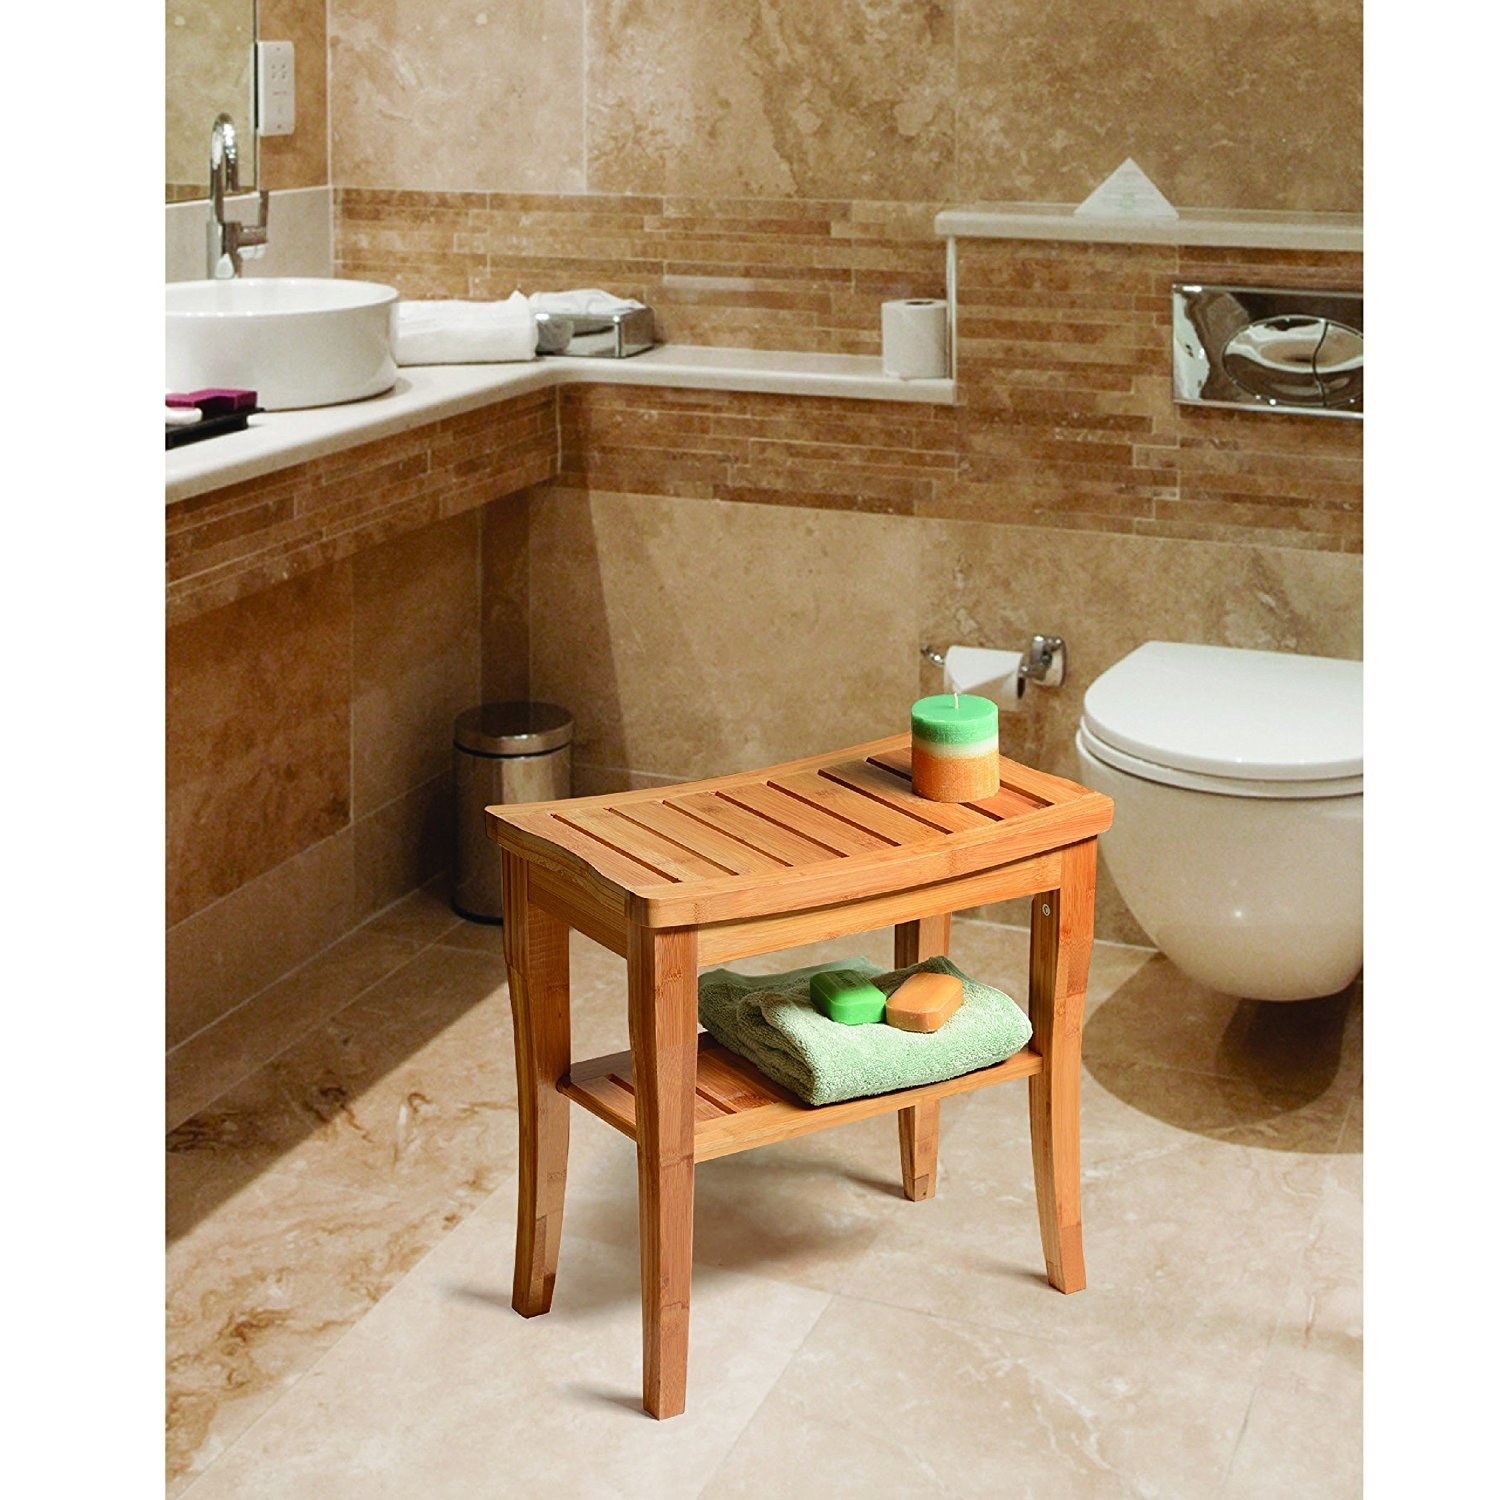 a bamboo shower seat bench so you can really sit in there and avoid until the water runs cold